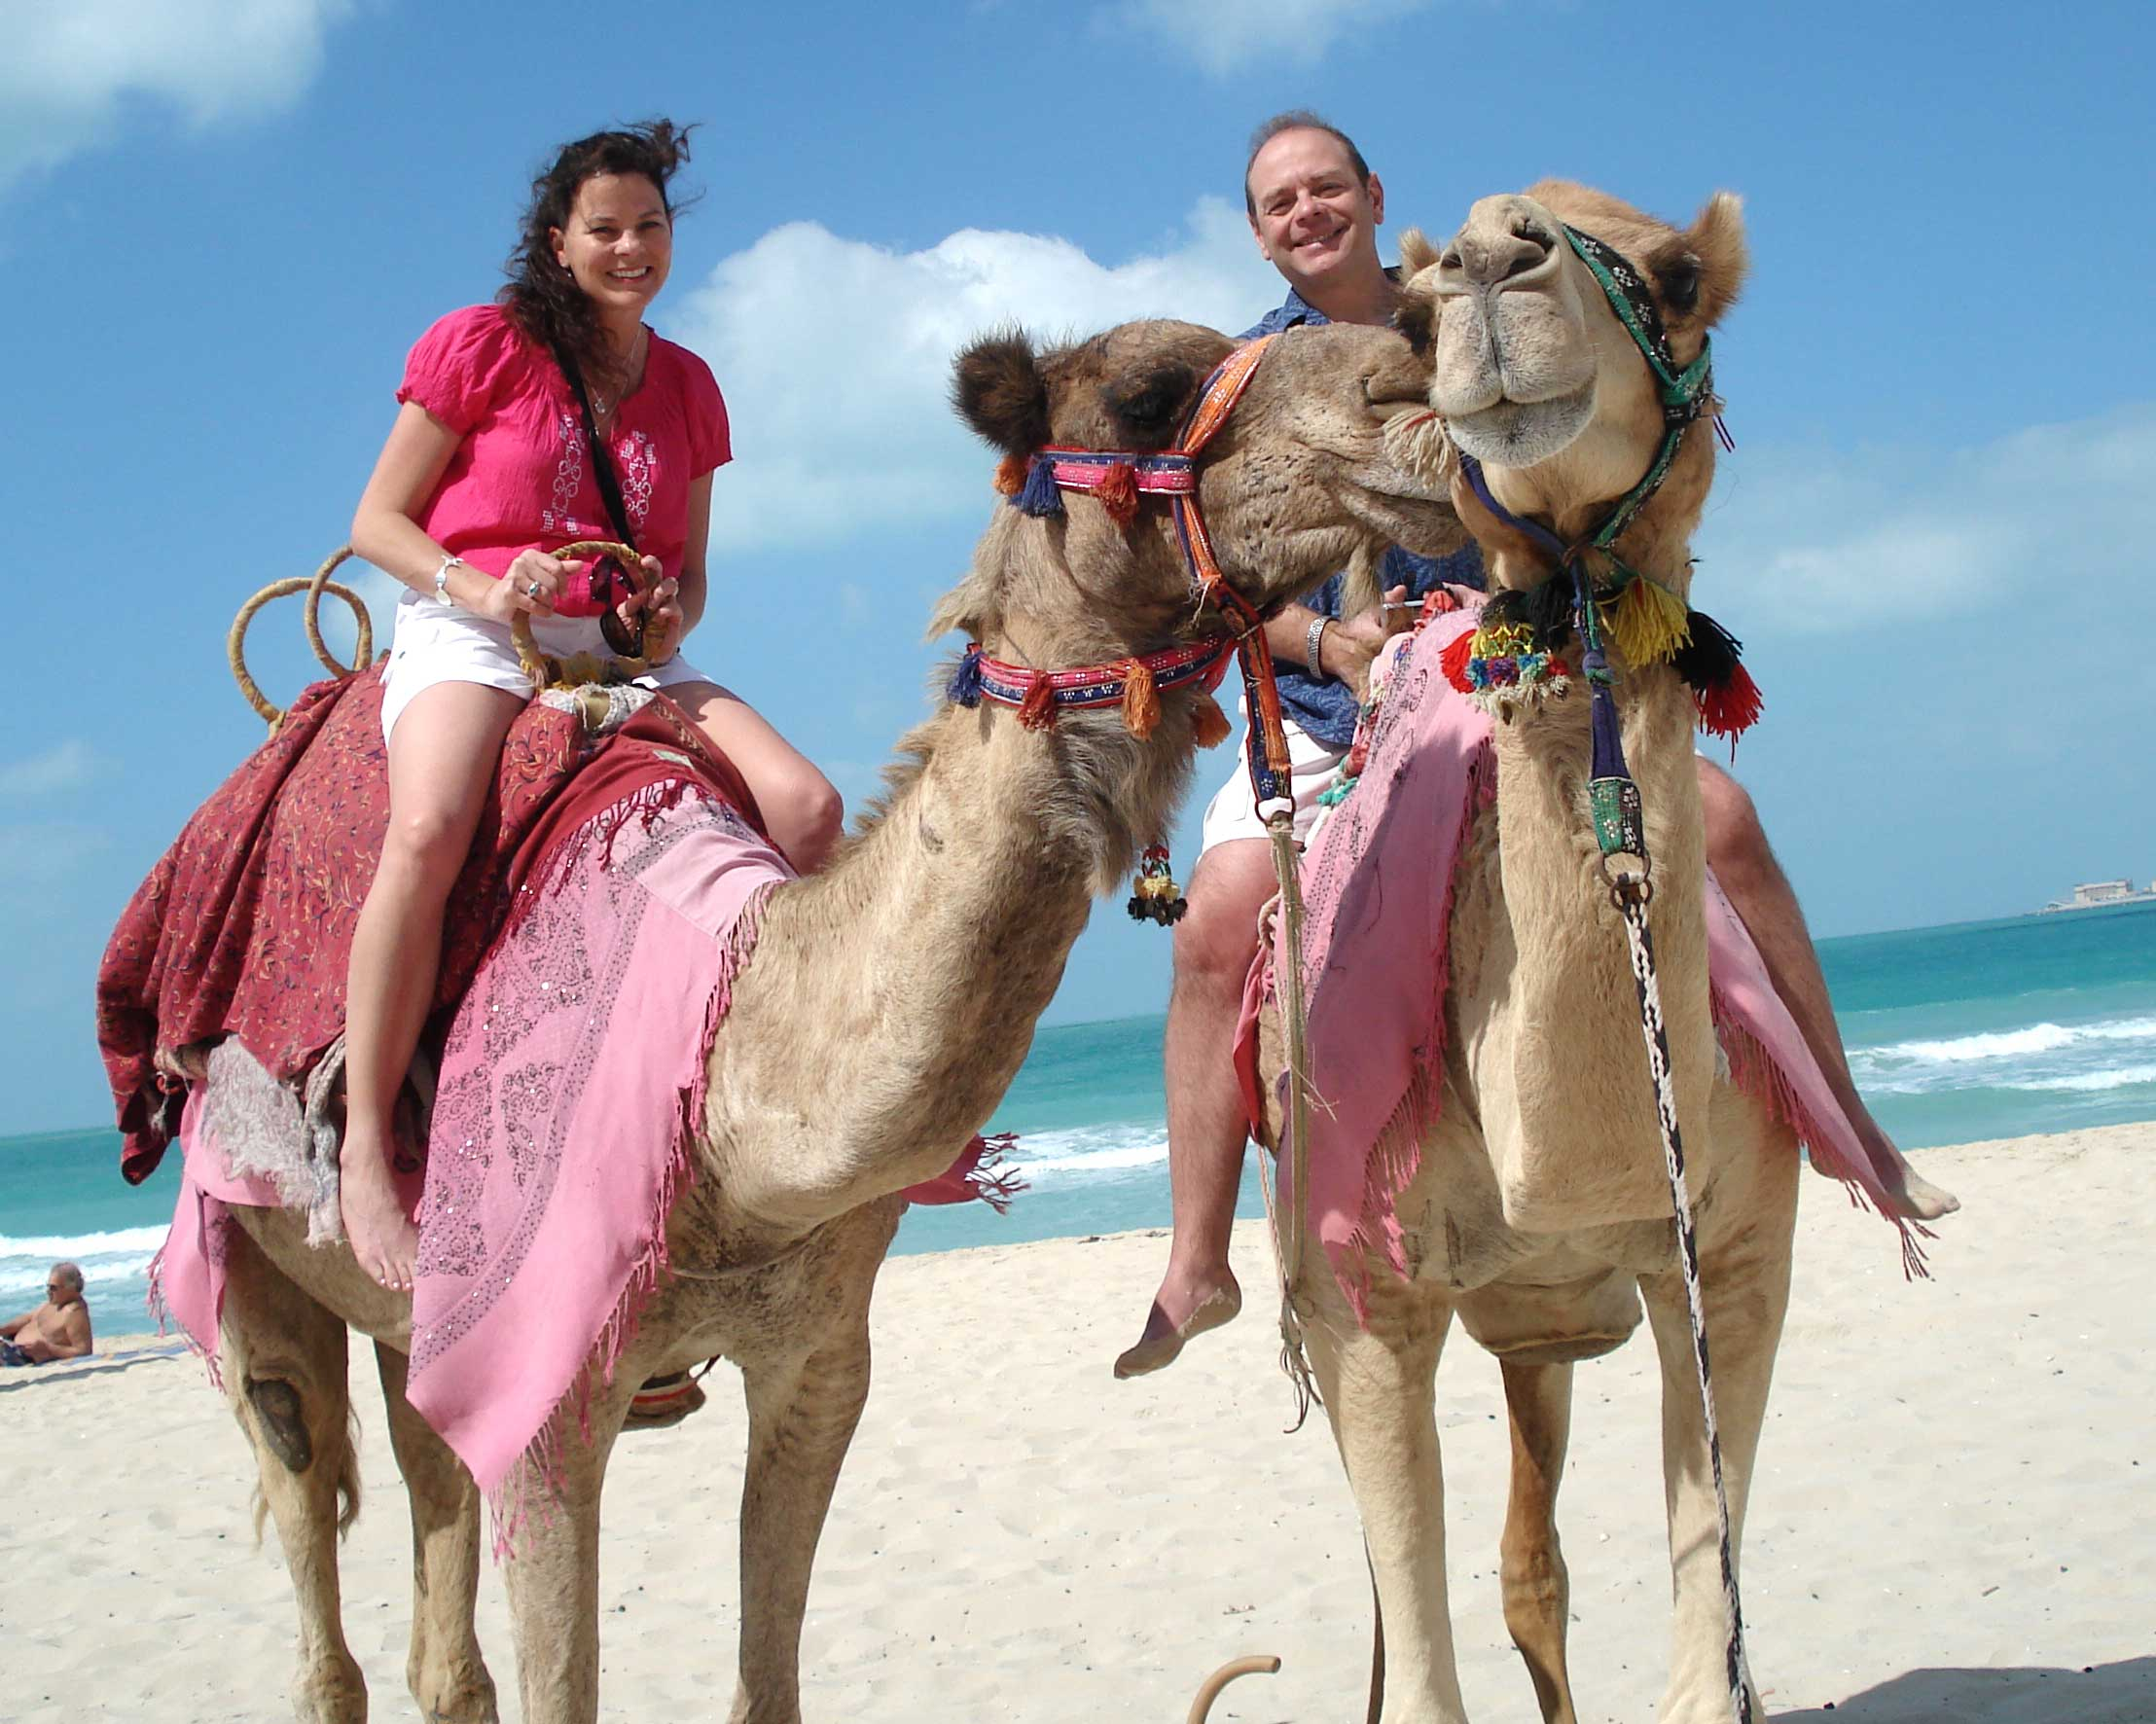 Riding camels in Dubai